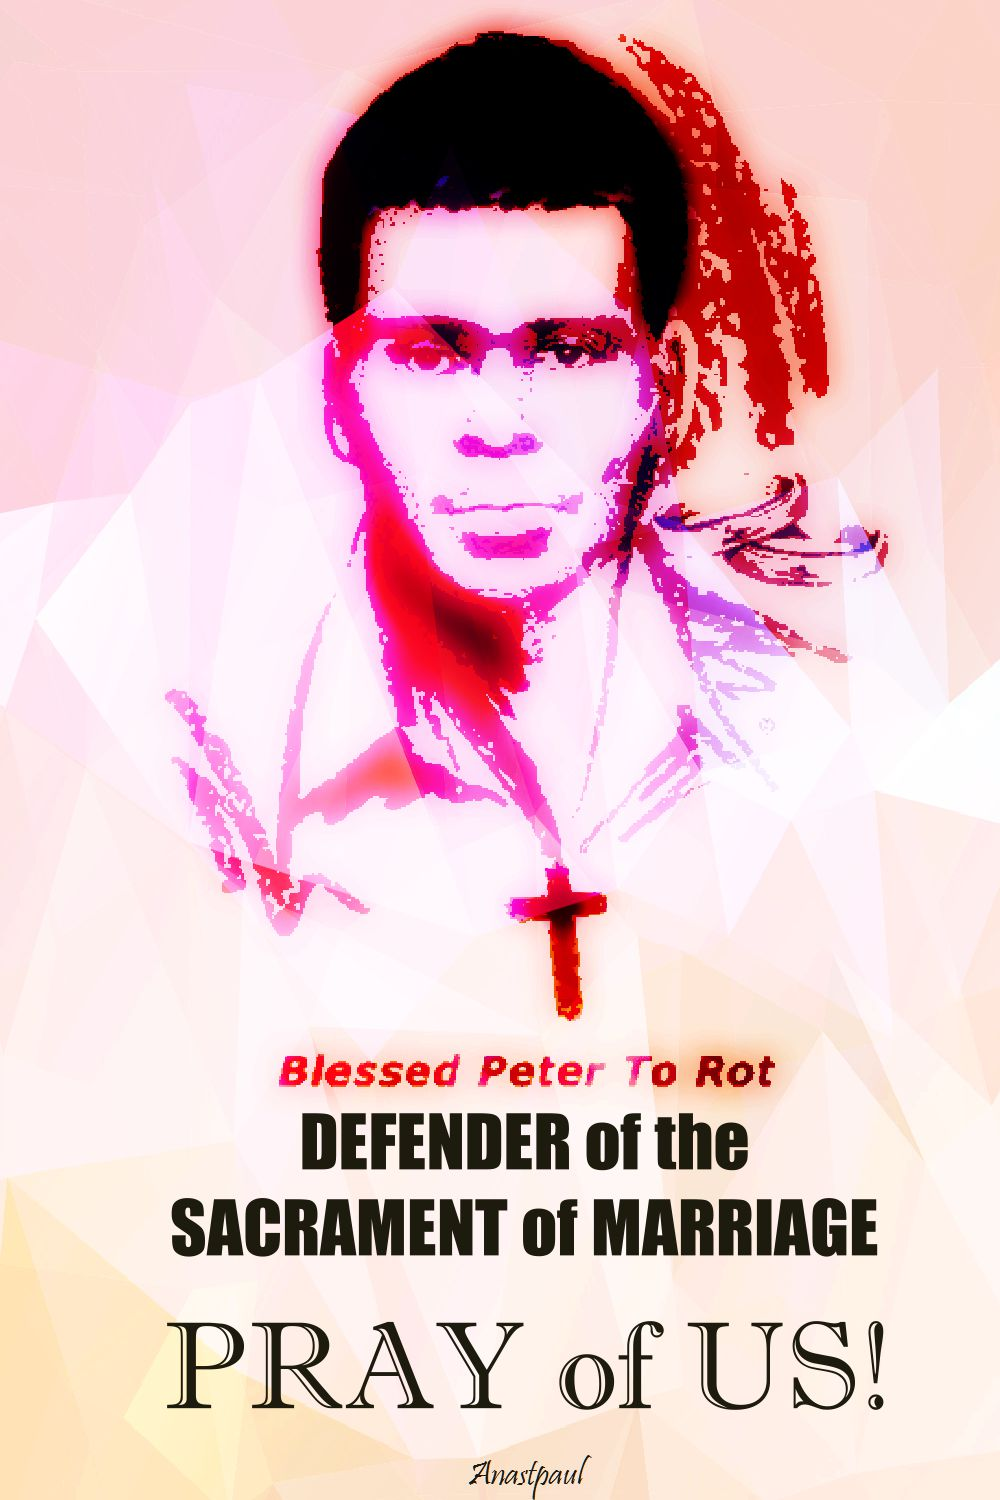 bl peter to rot - pray for us 2